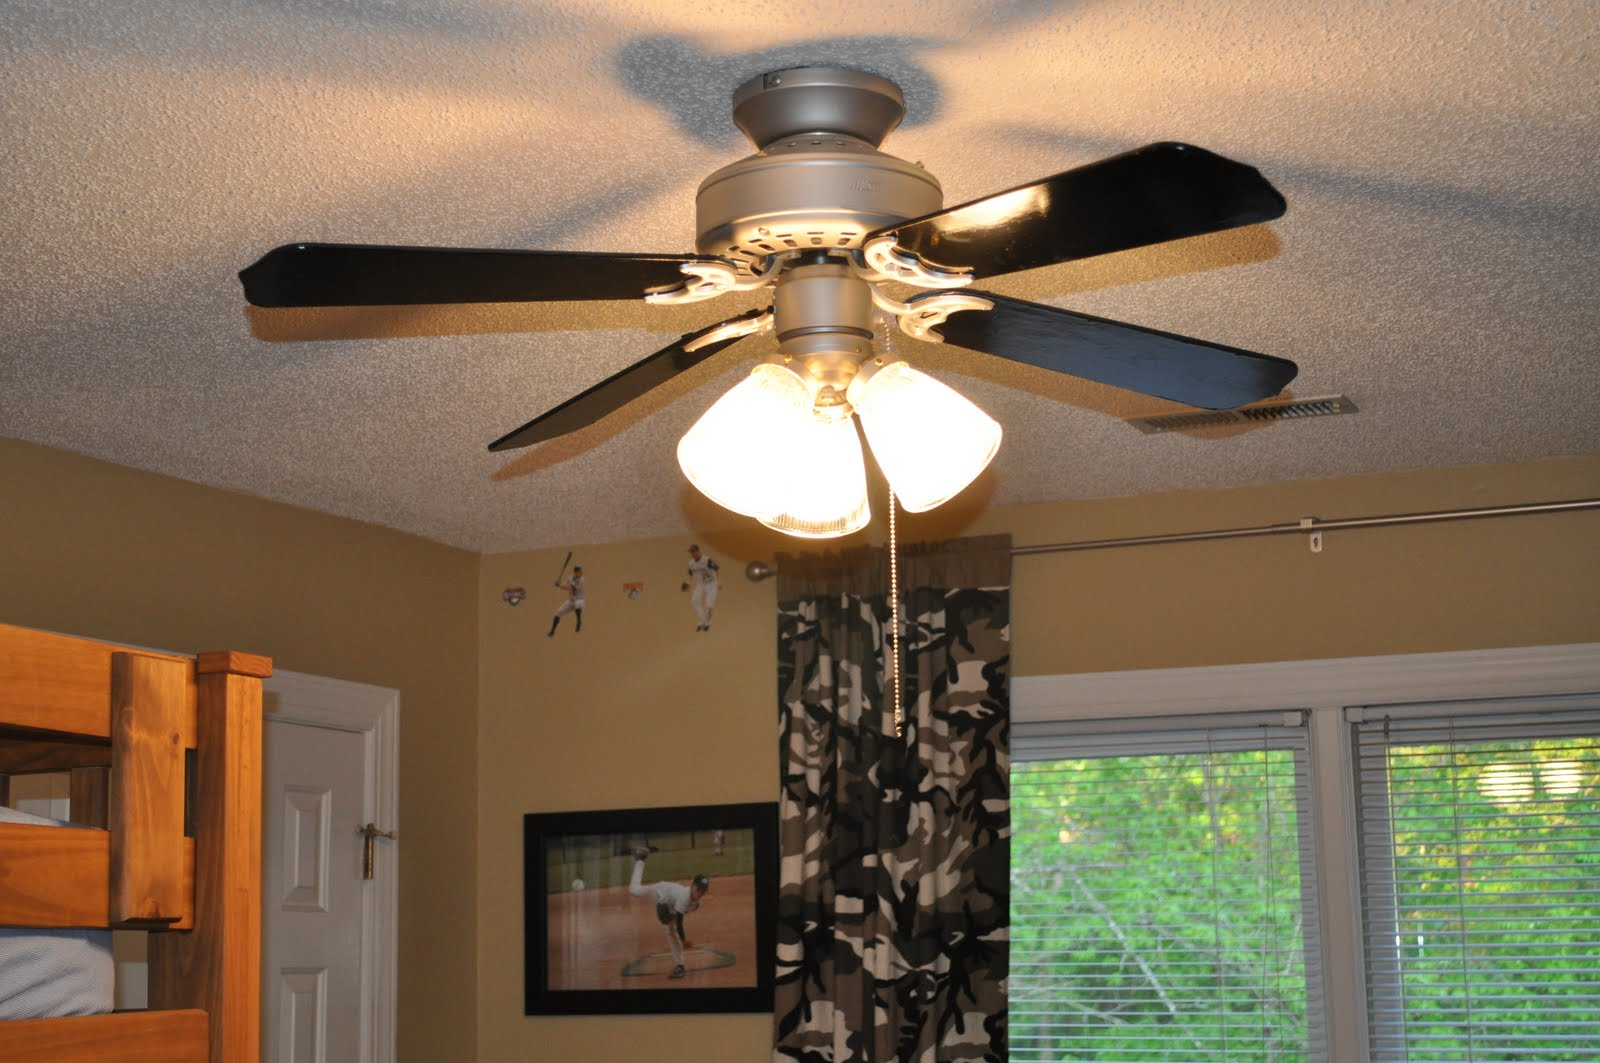 A Ceiling Fans At Living Room (View 6 of 10)